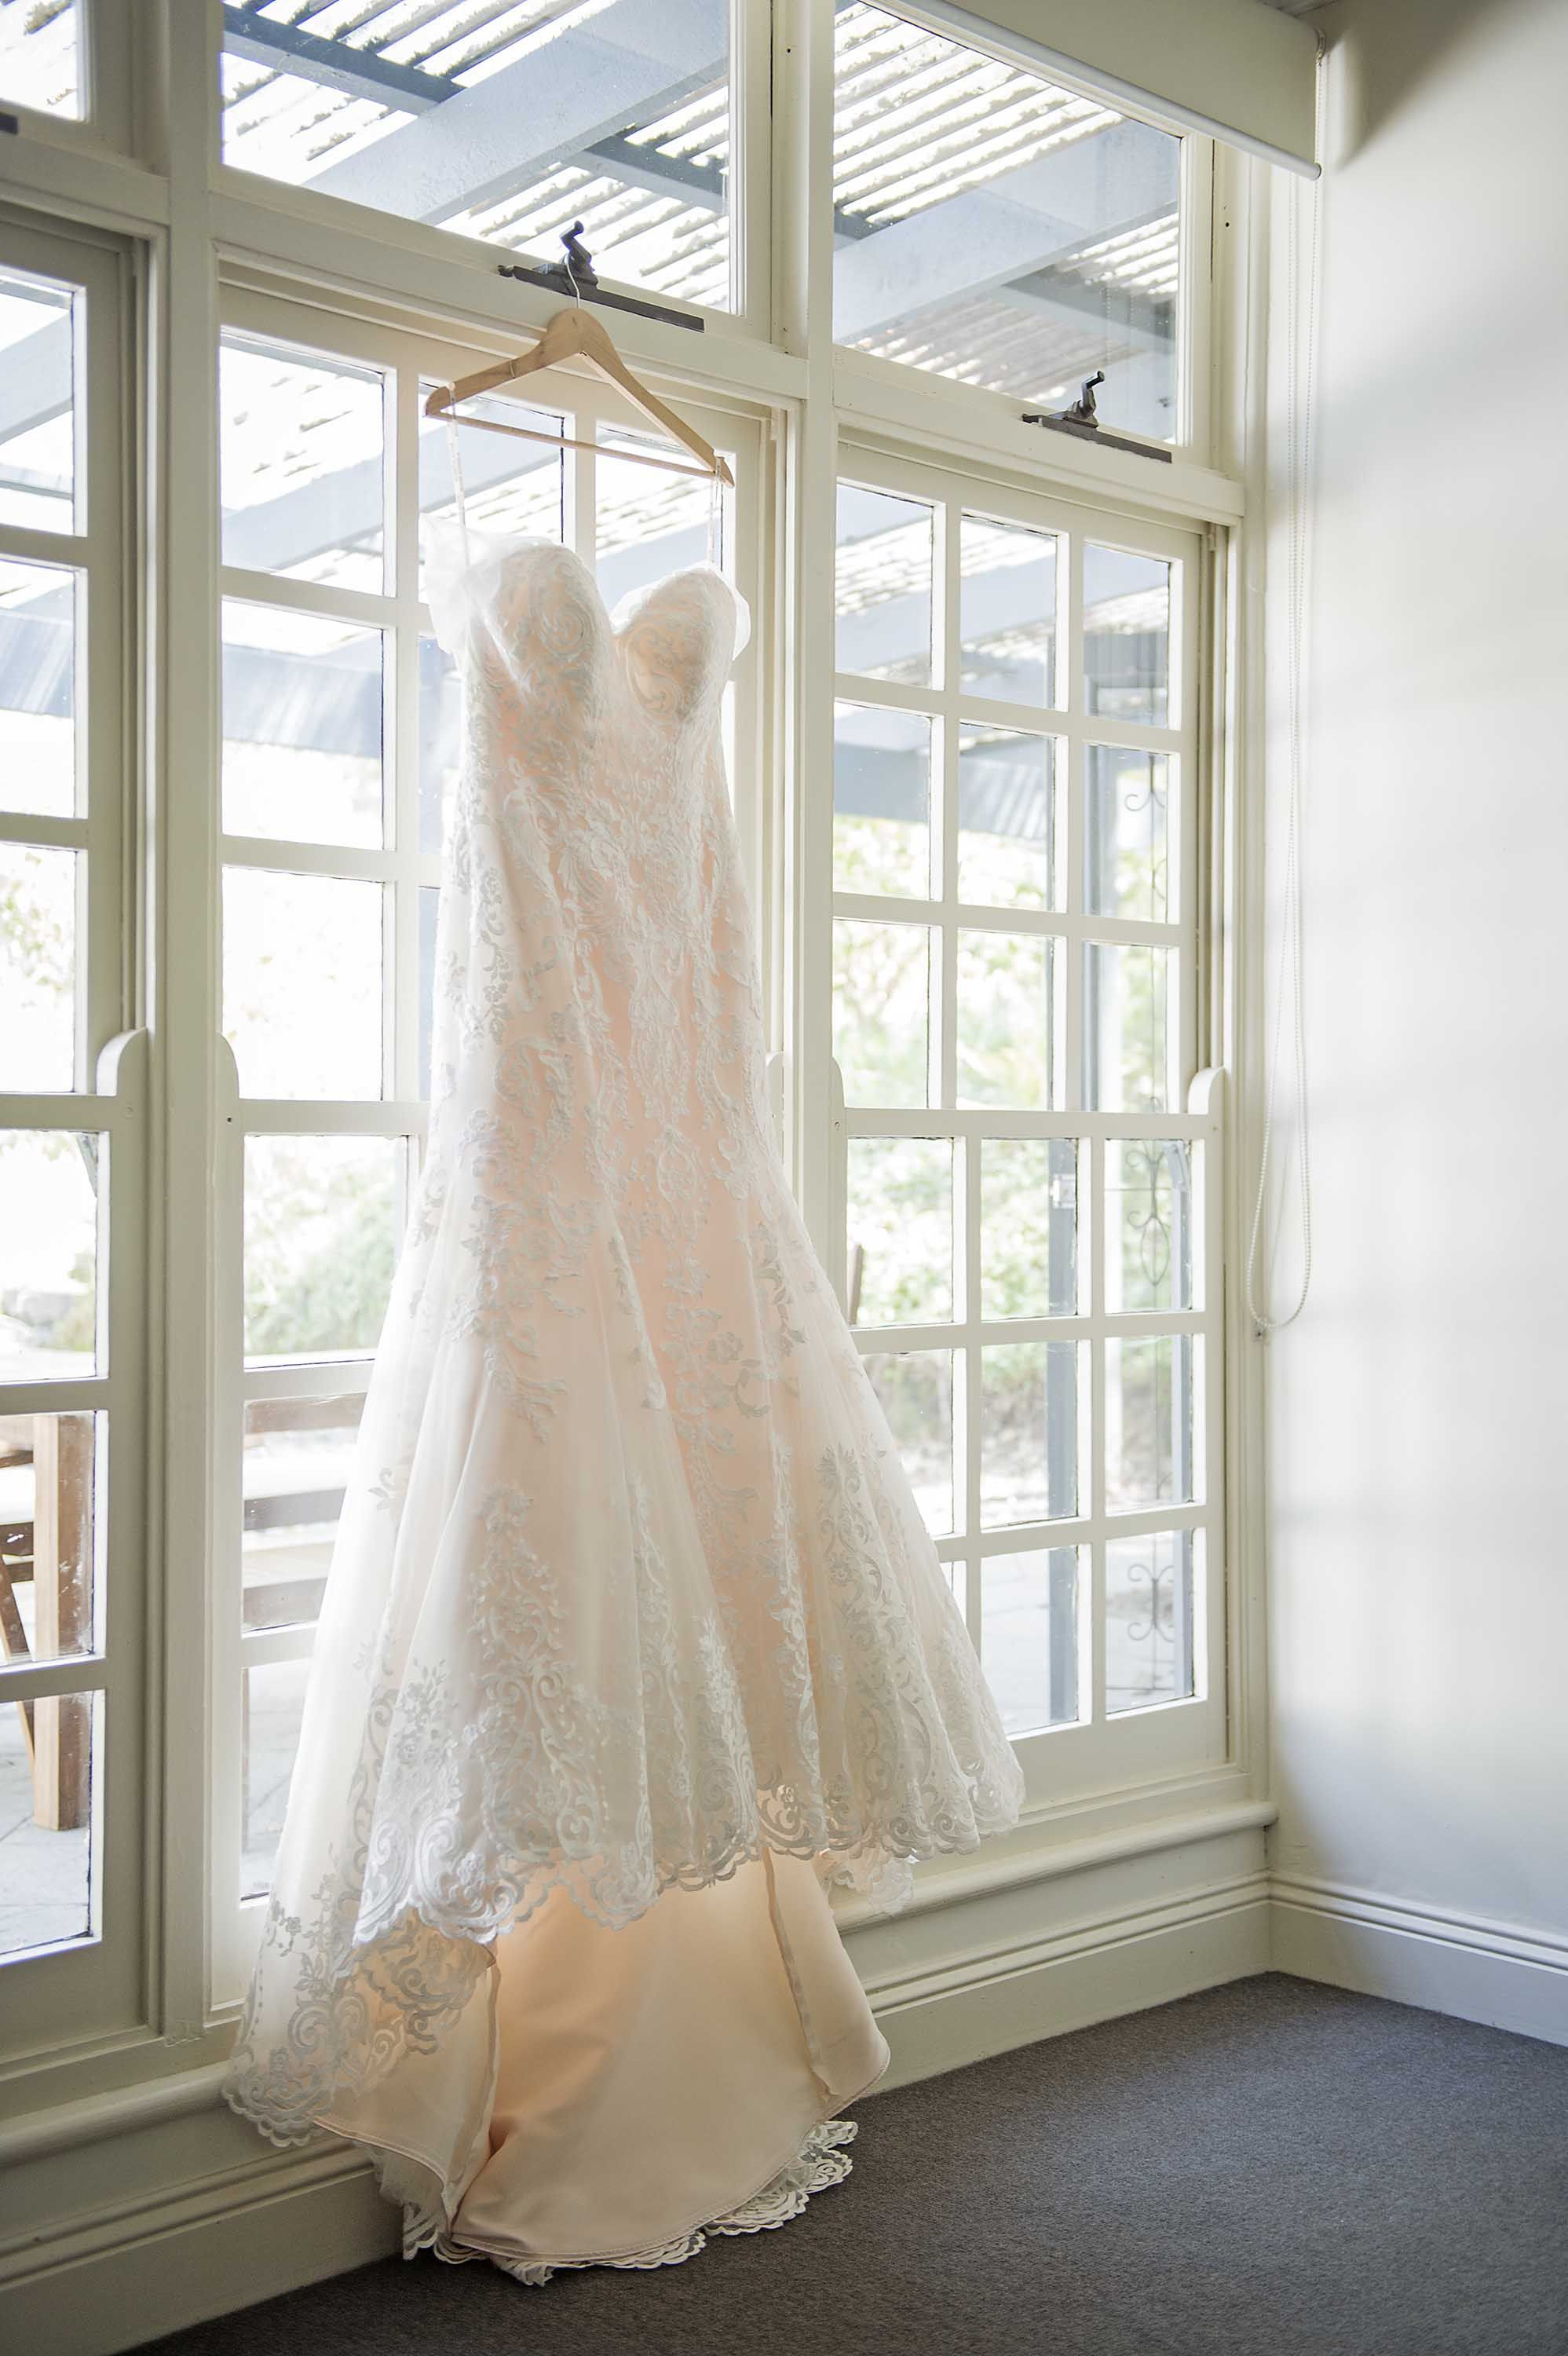 My maggie soretto custom made wedding dress wedding dress ideas